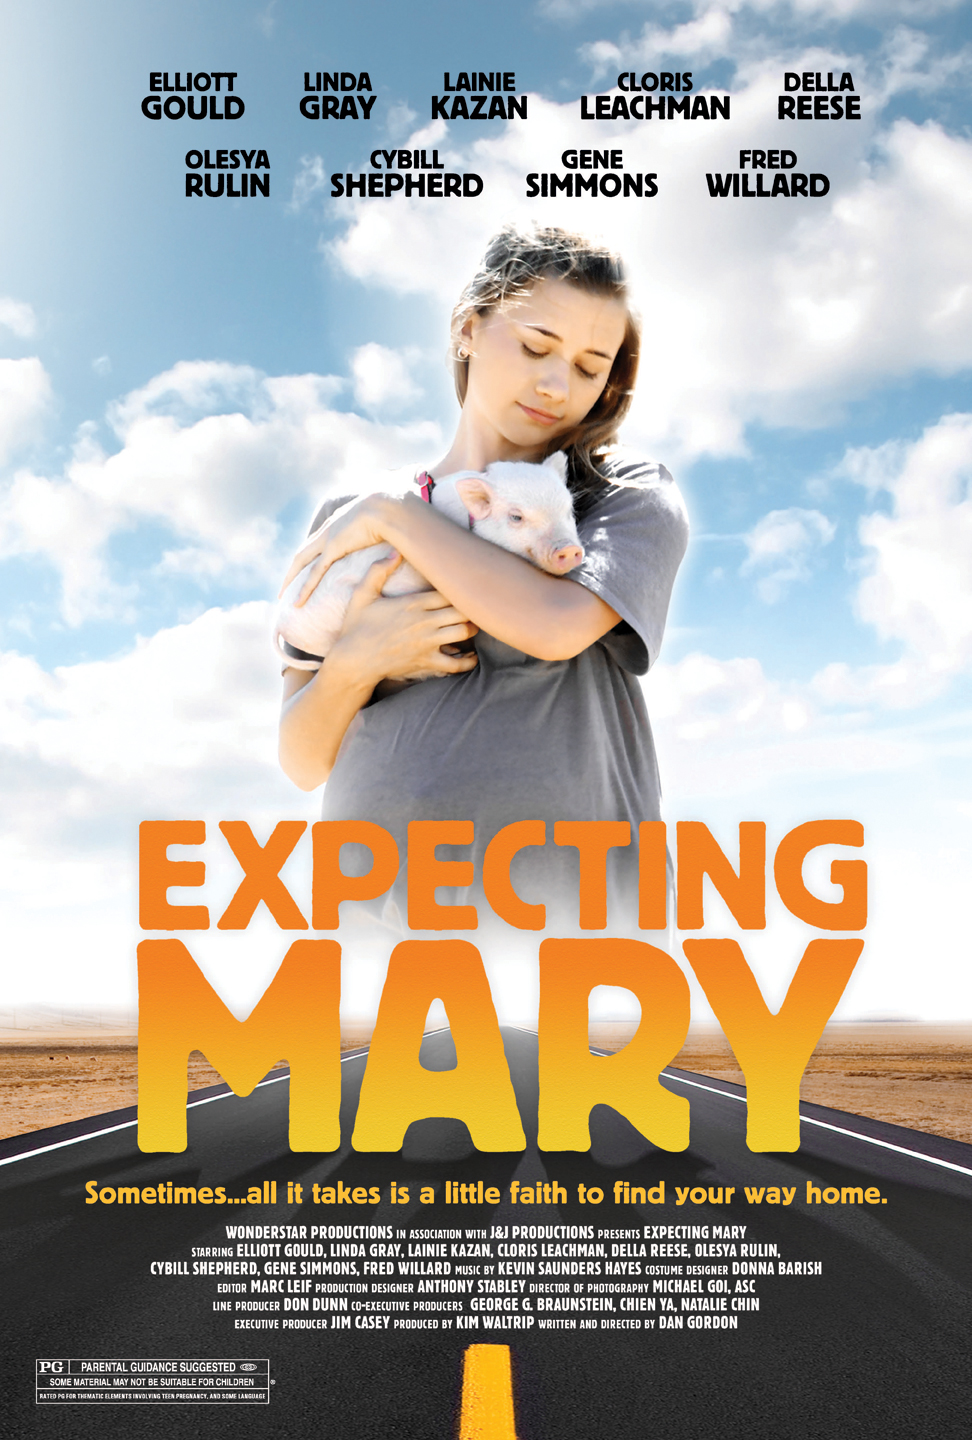 Expecting-Mary-Poster-27x40-A.jpg